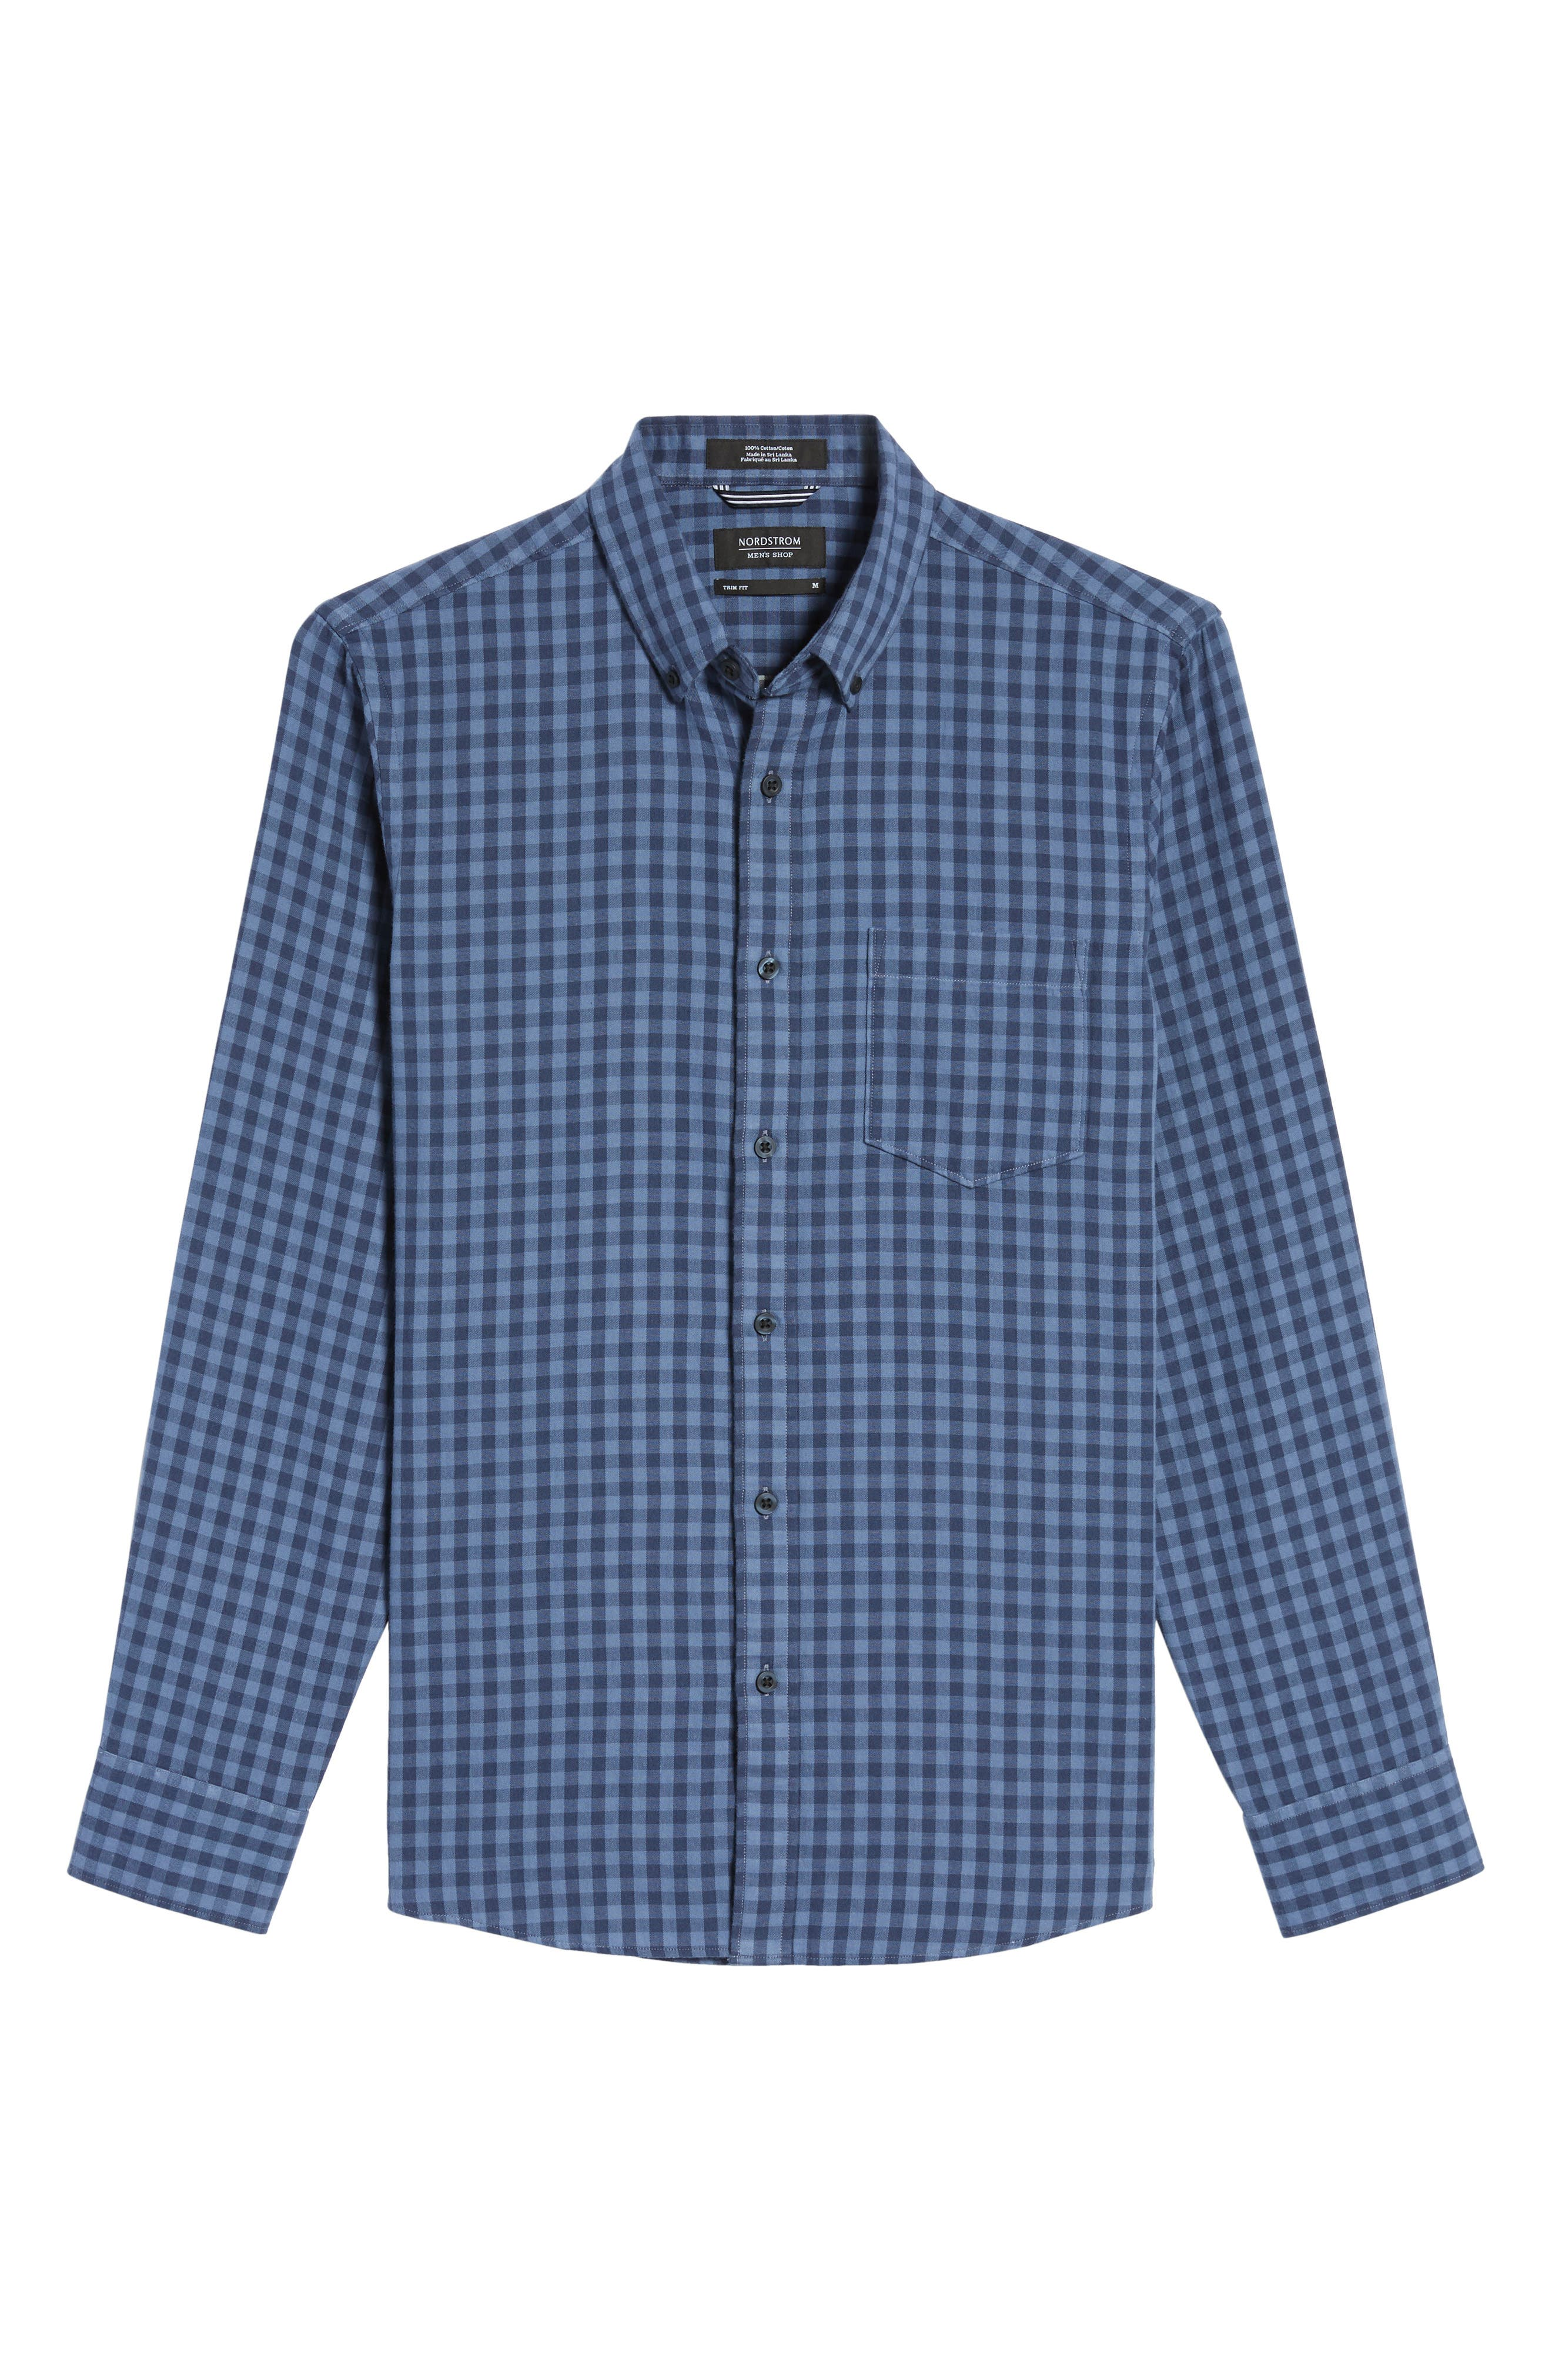 Trim Fit Duofold Check Sport Shirt,                             Alternate thumbnail 6, color,                             Blue Canal Navy Plaid Duofold